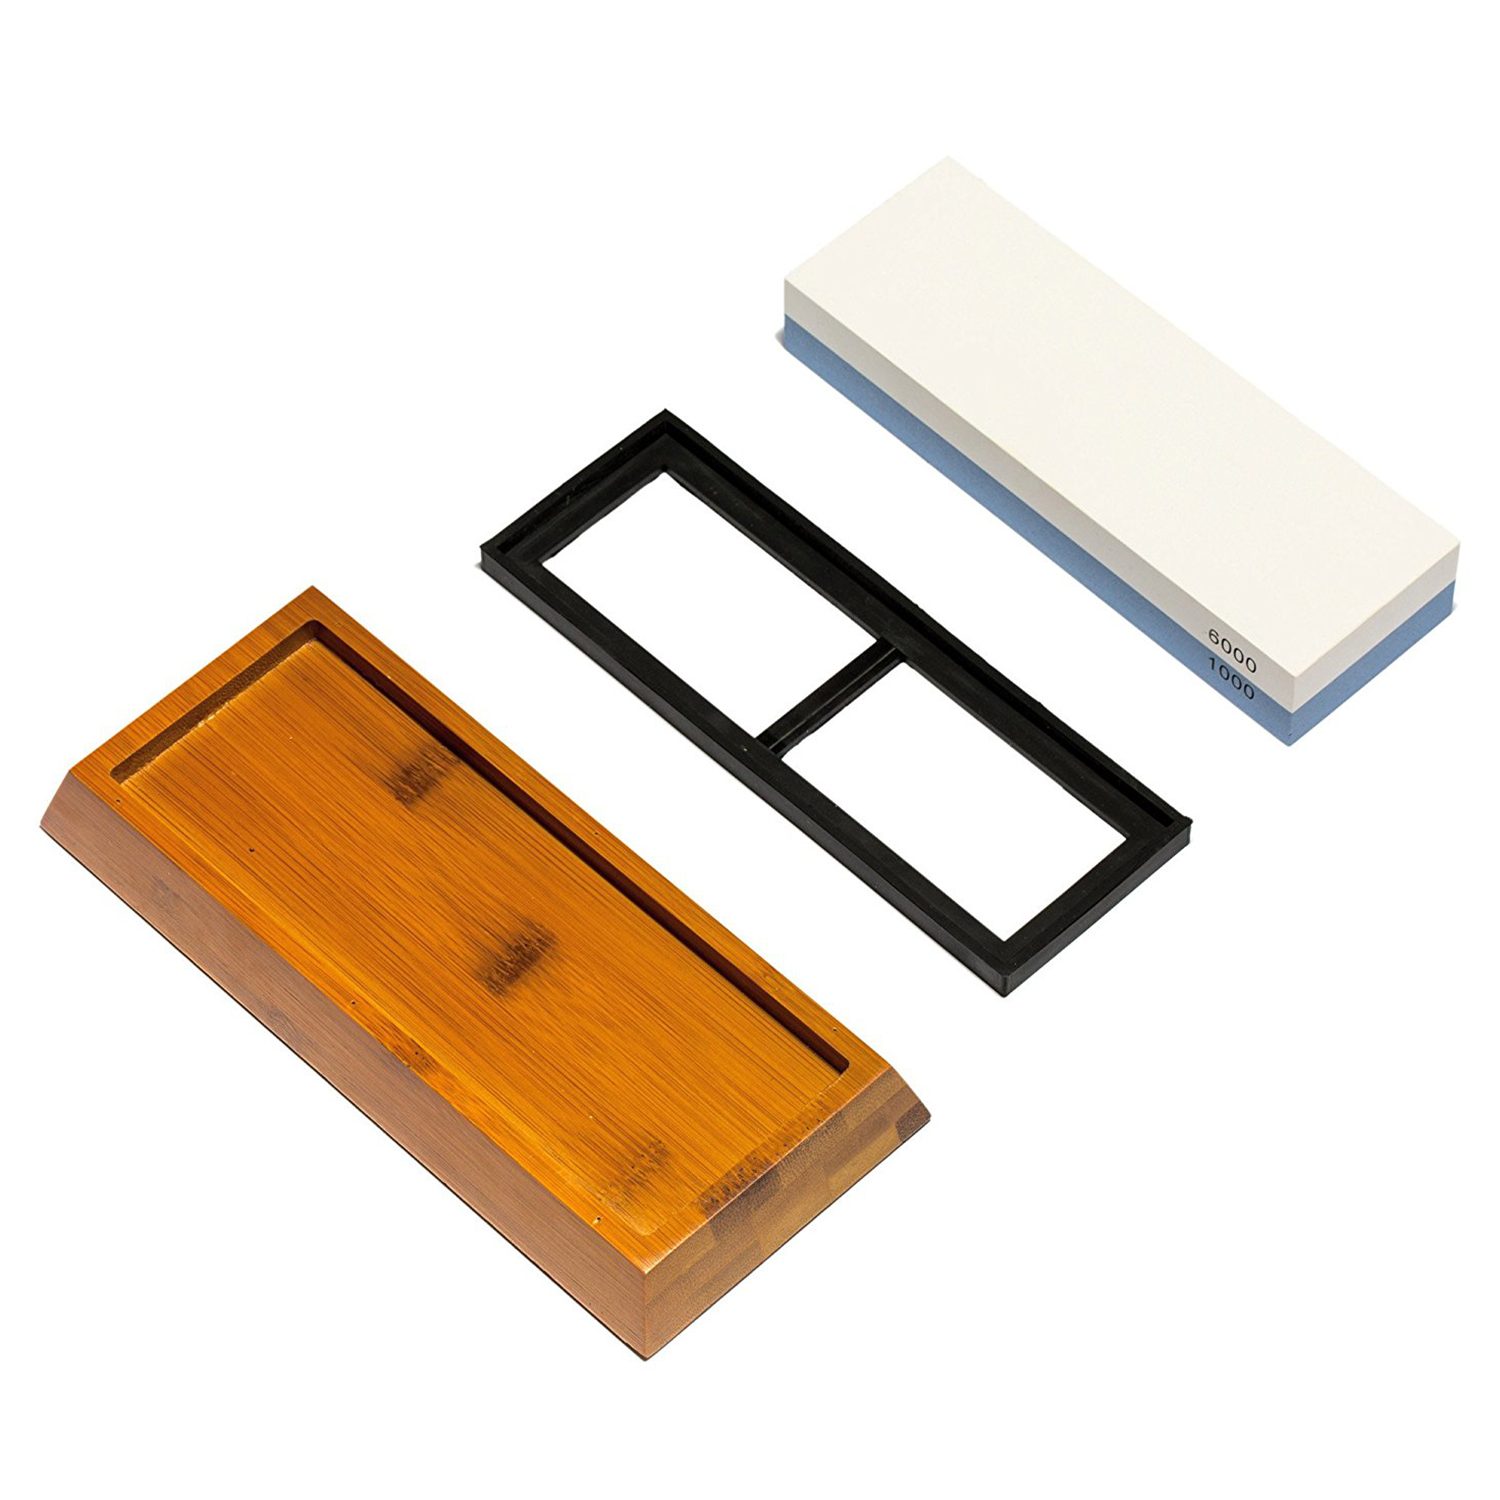 Hot sale Knife Sharpening Stone 2 Side Grit <font><b>1000/6000</b></font> <font><b>Whetstone</b></font> Best Kitchen Knife Sharpener Waterstone with NonSlip Bamboo Ba image